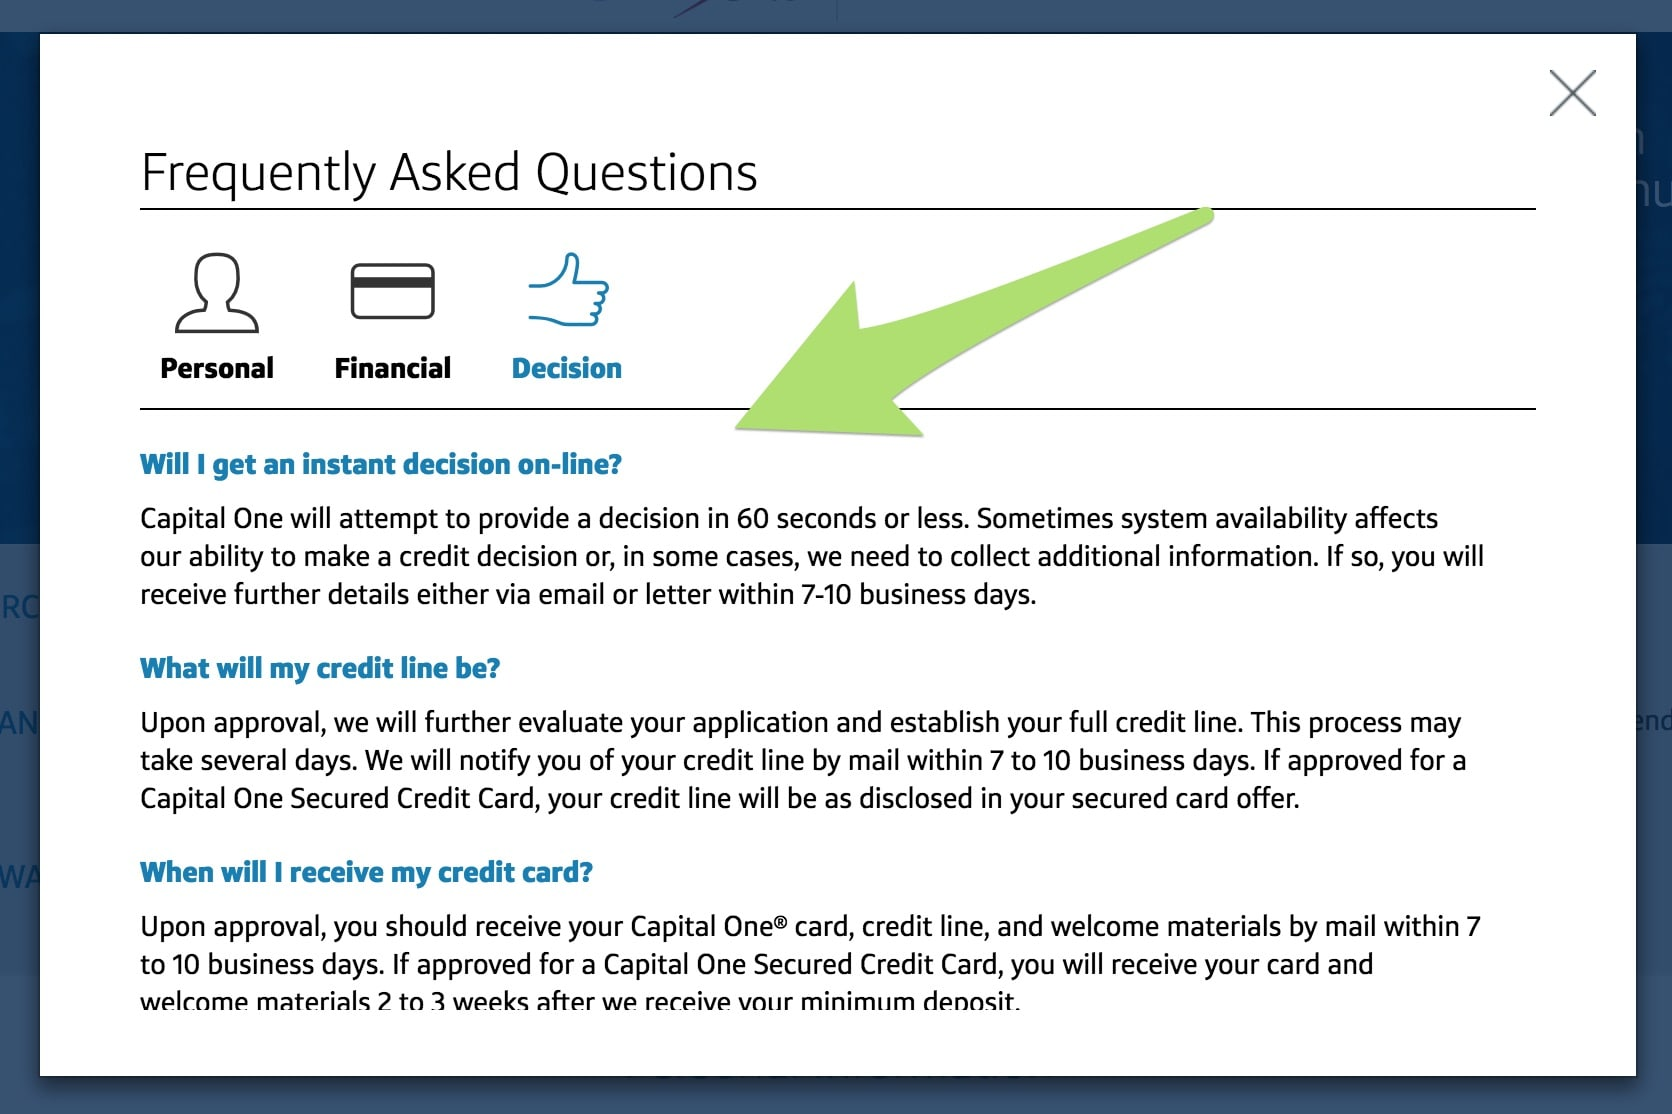 Capital One's FAQ on instant approval.